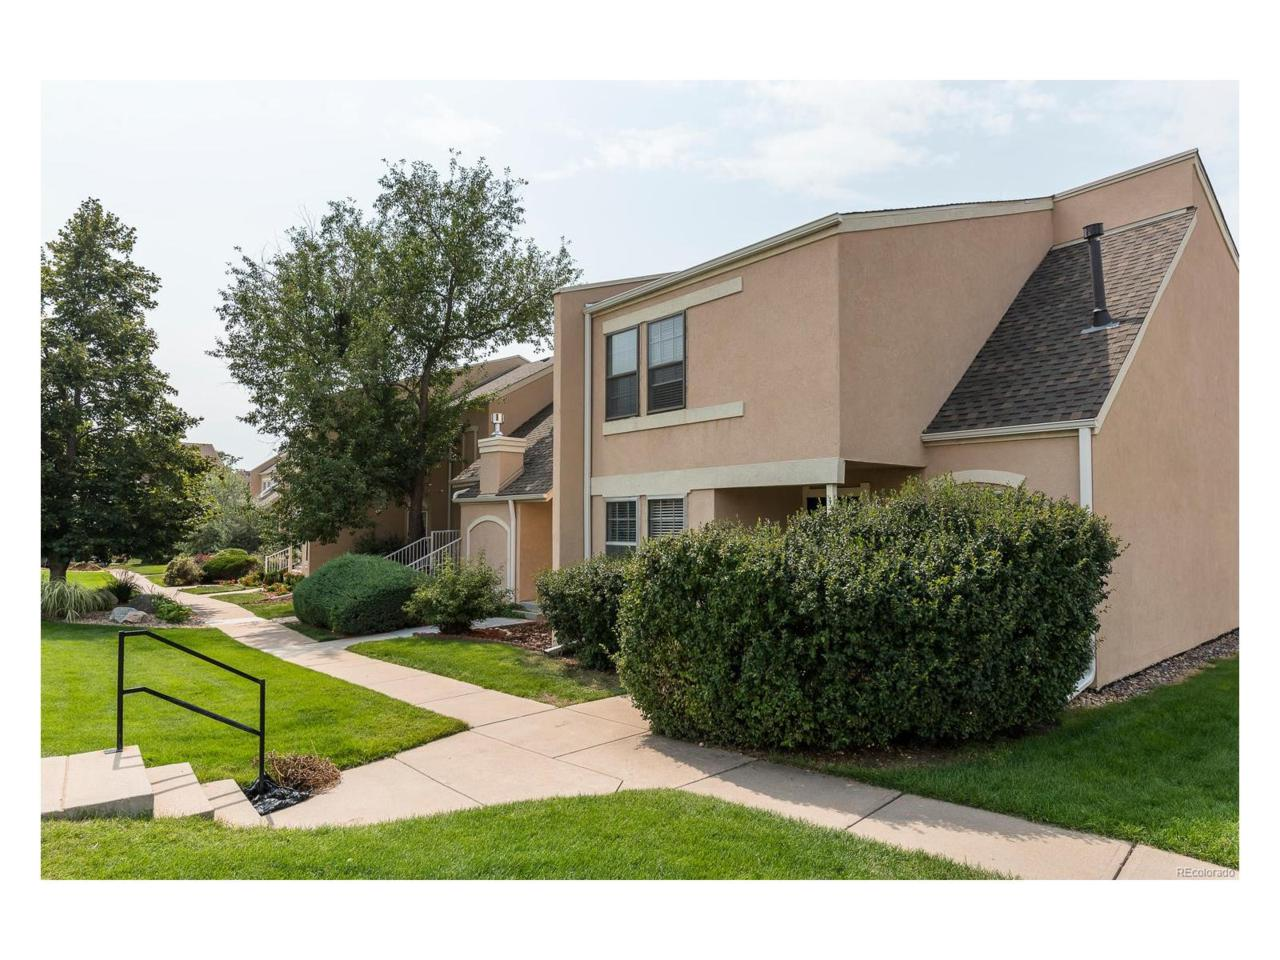 13033 E Bethany Place, Aurora, CO 80014 (MLS #9717508) :: 8z Real Estate